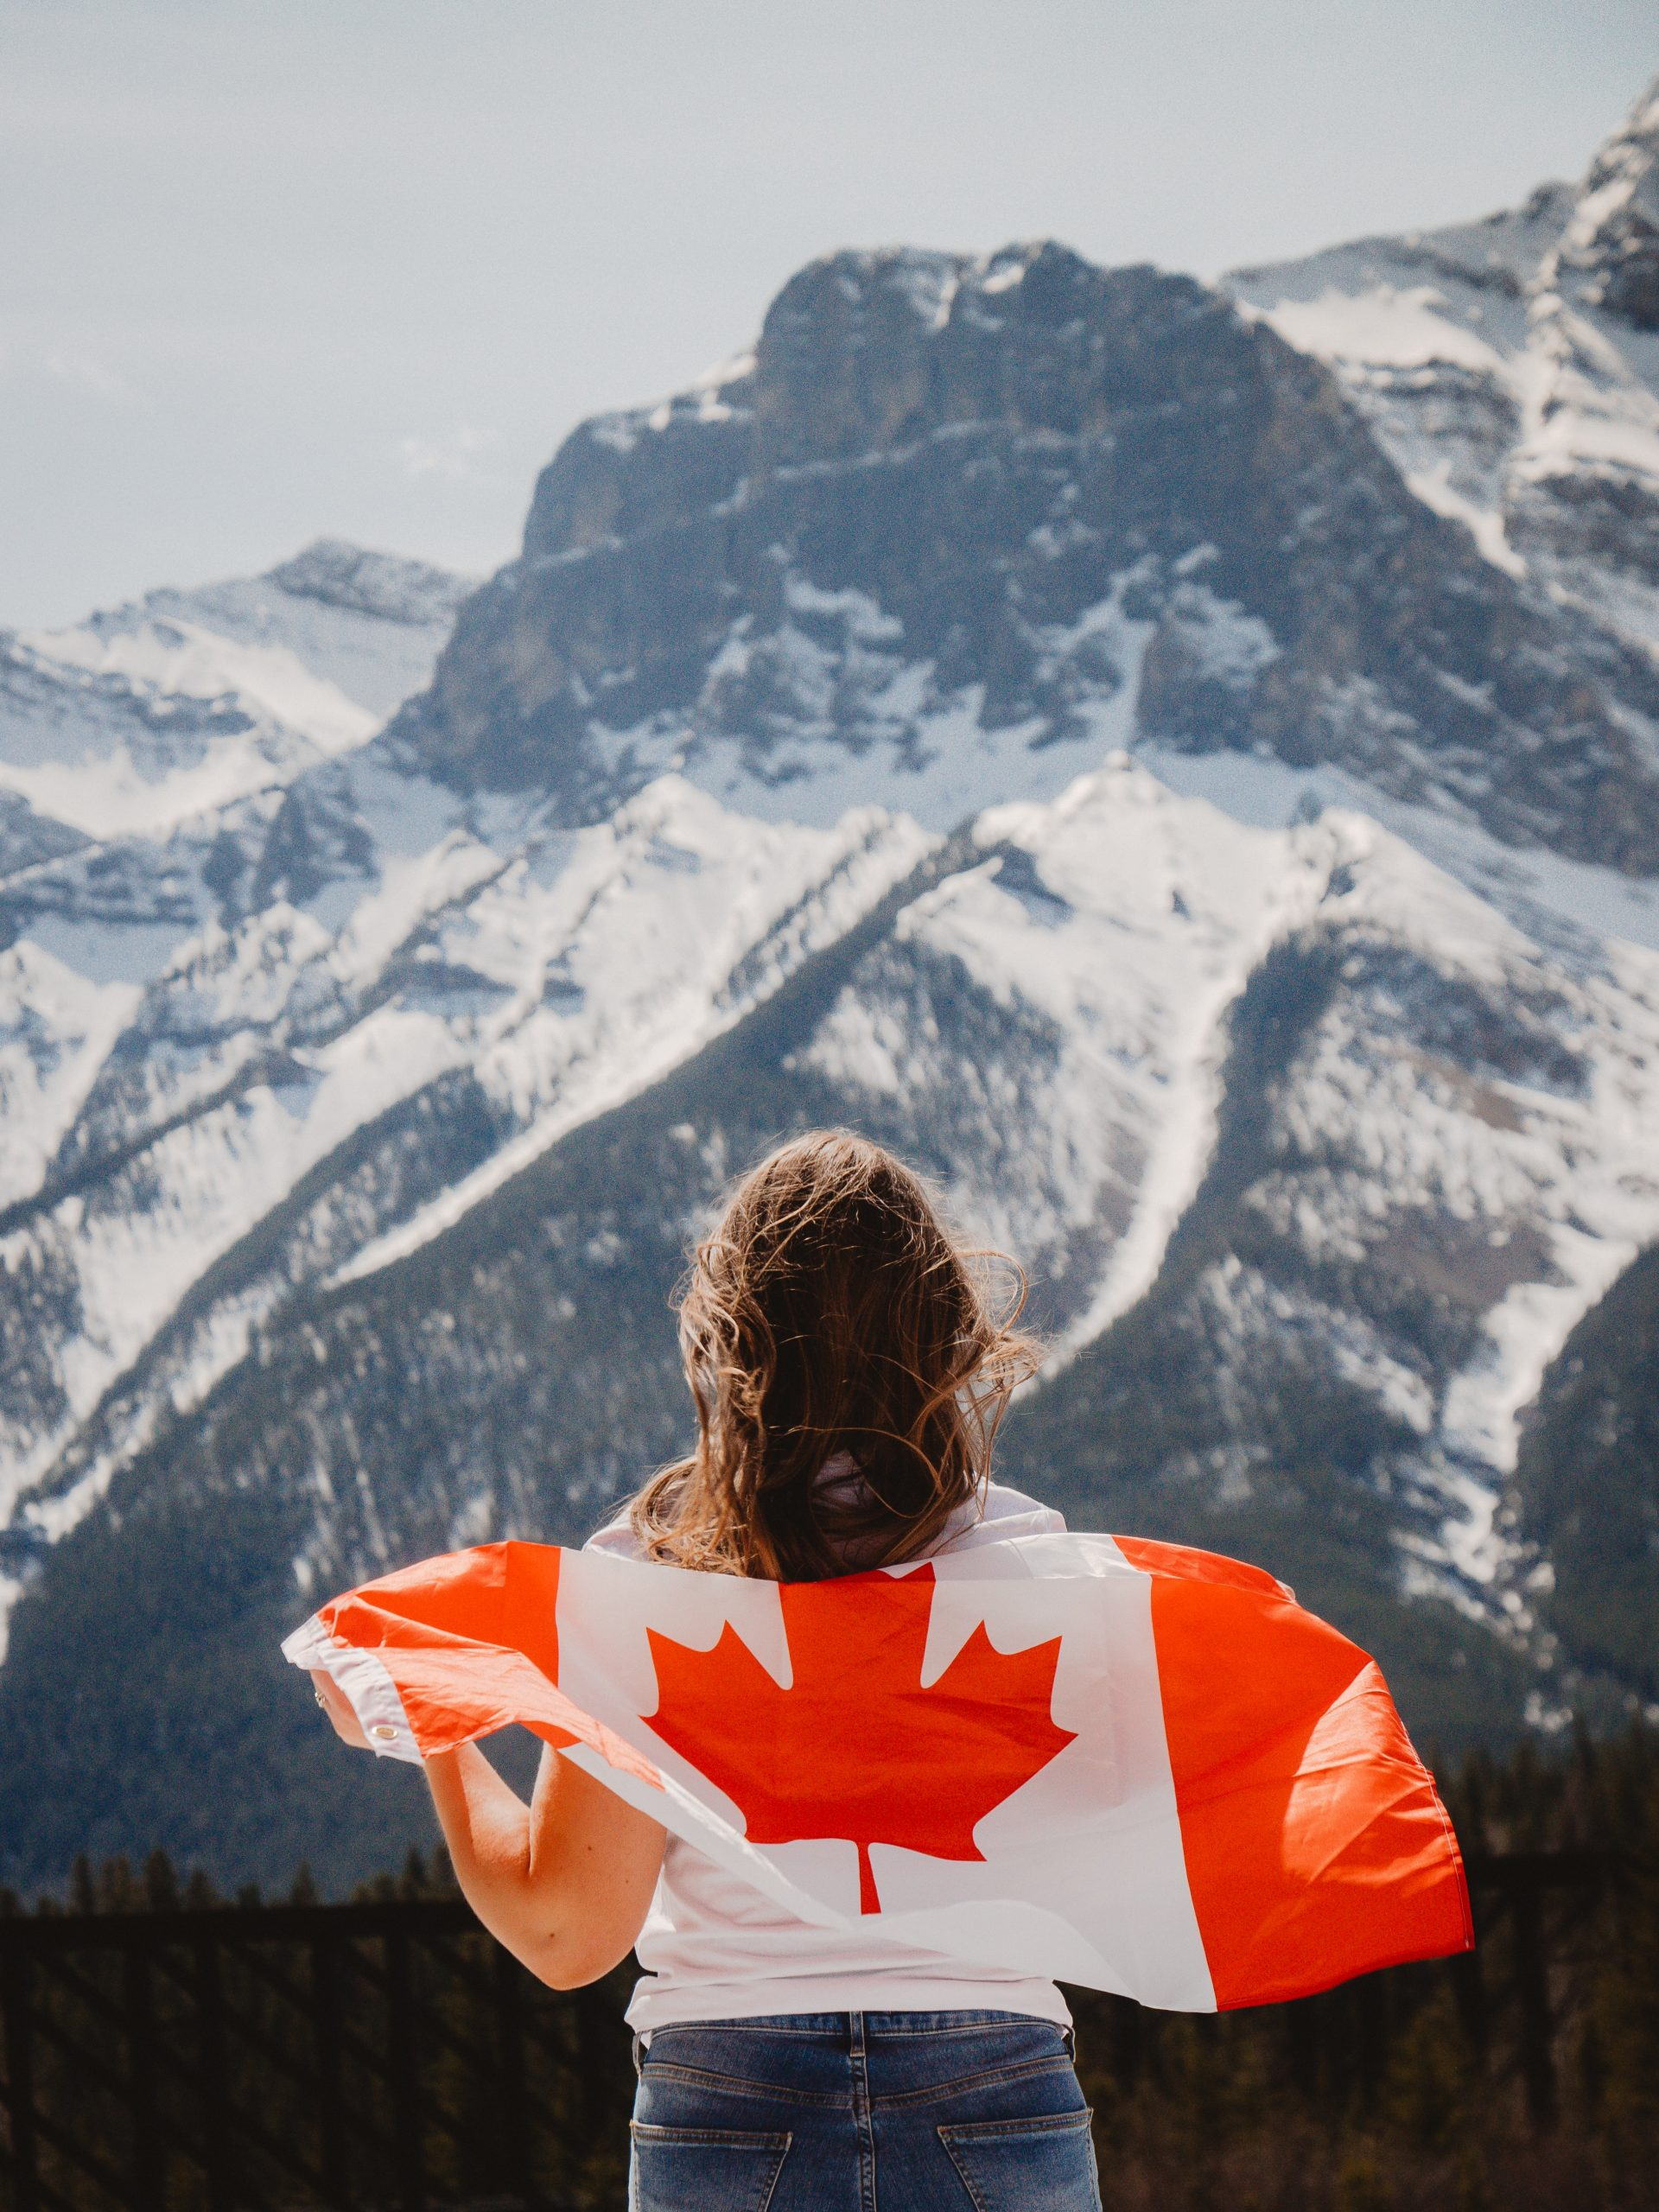 image of woman holding canadian flag looking at mountains